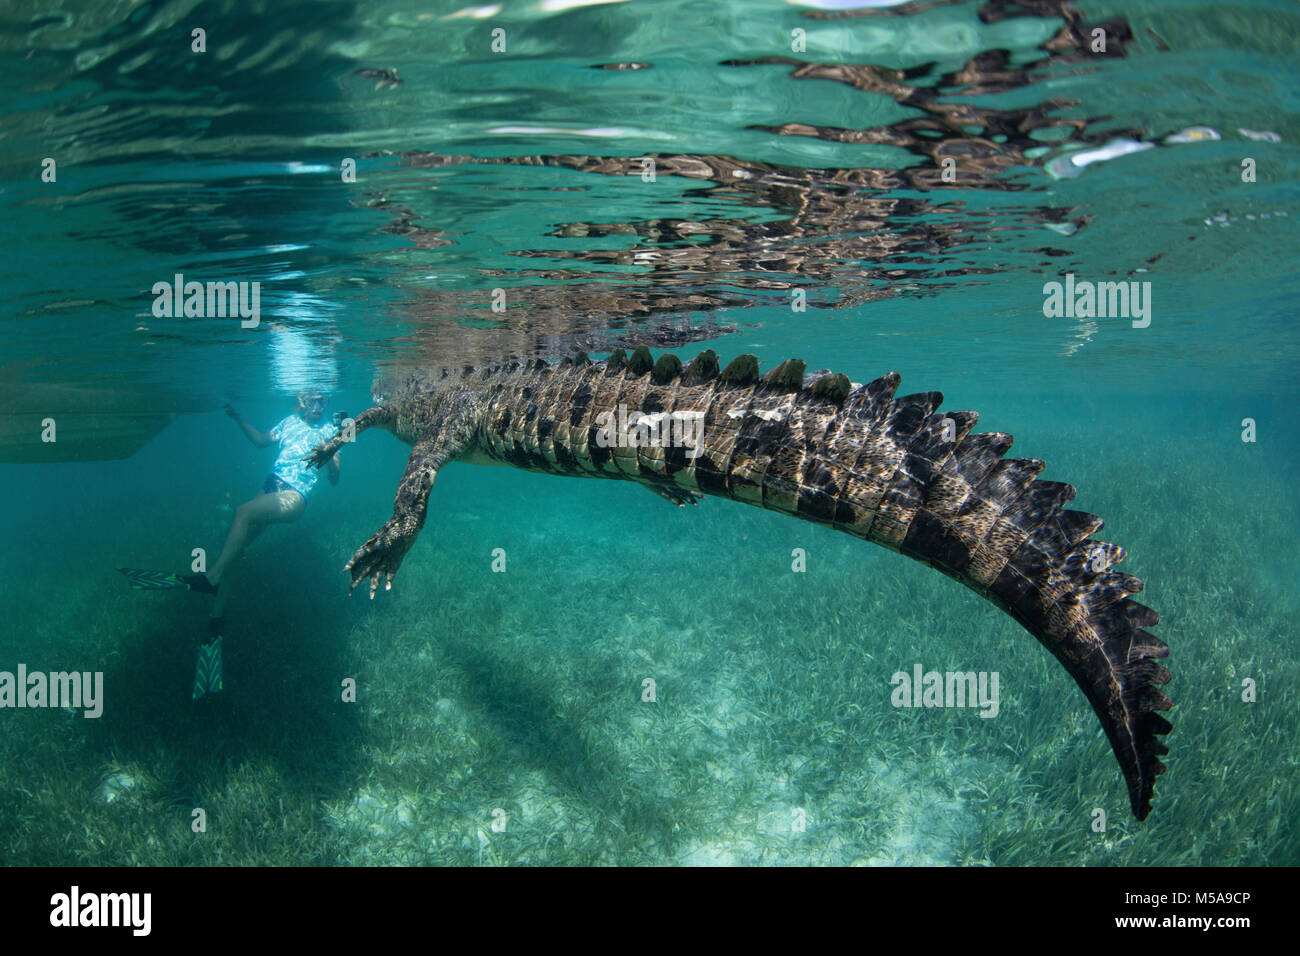 A crocodile in a nature reserve, swimming with a snorkeler the Garden of the Queens, Cuba.  Underwater view. - Stock Image